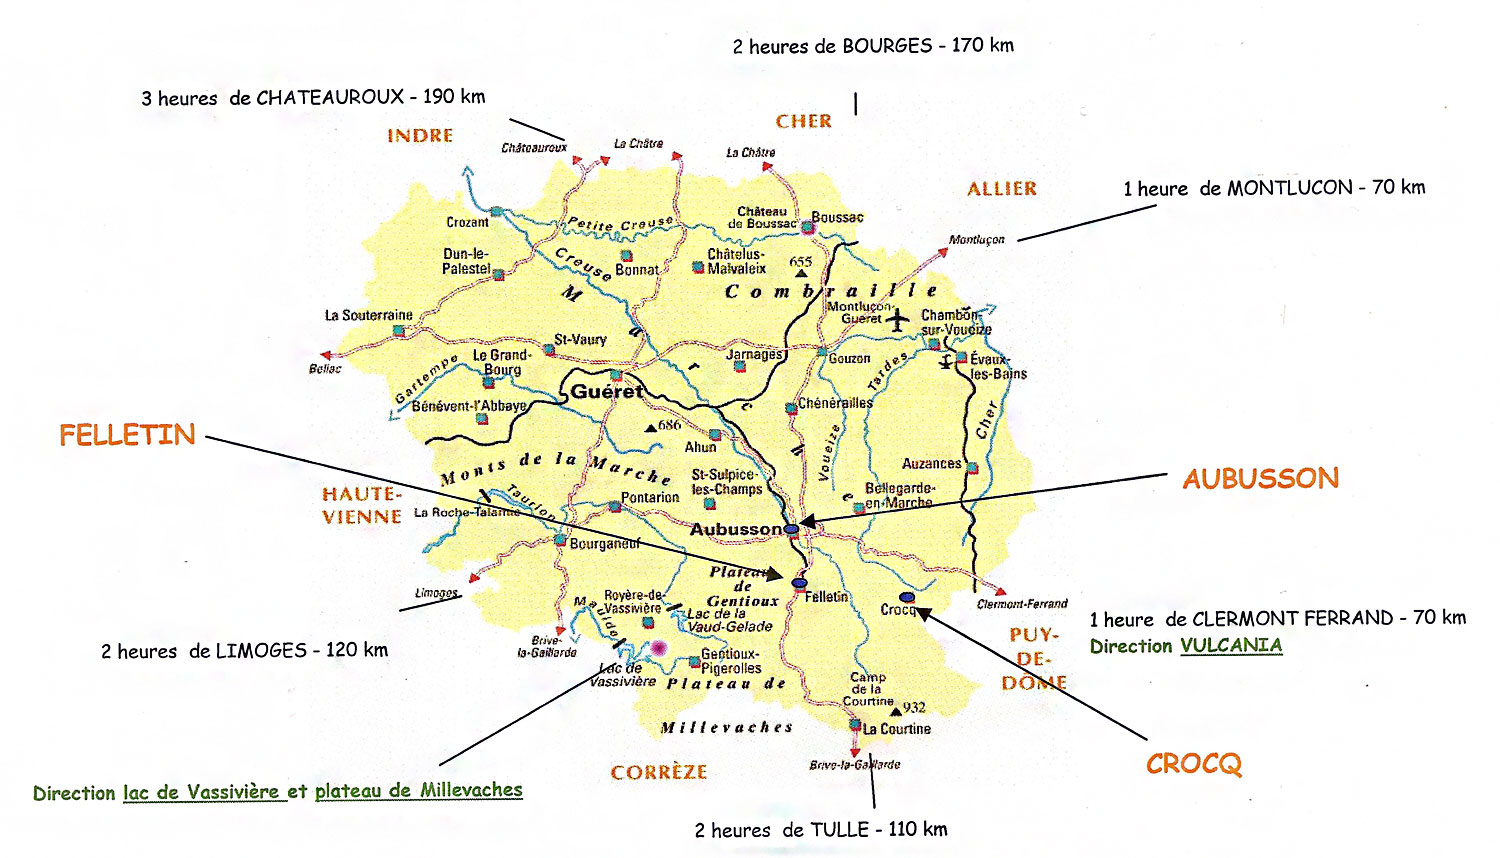 Carte de Crocq